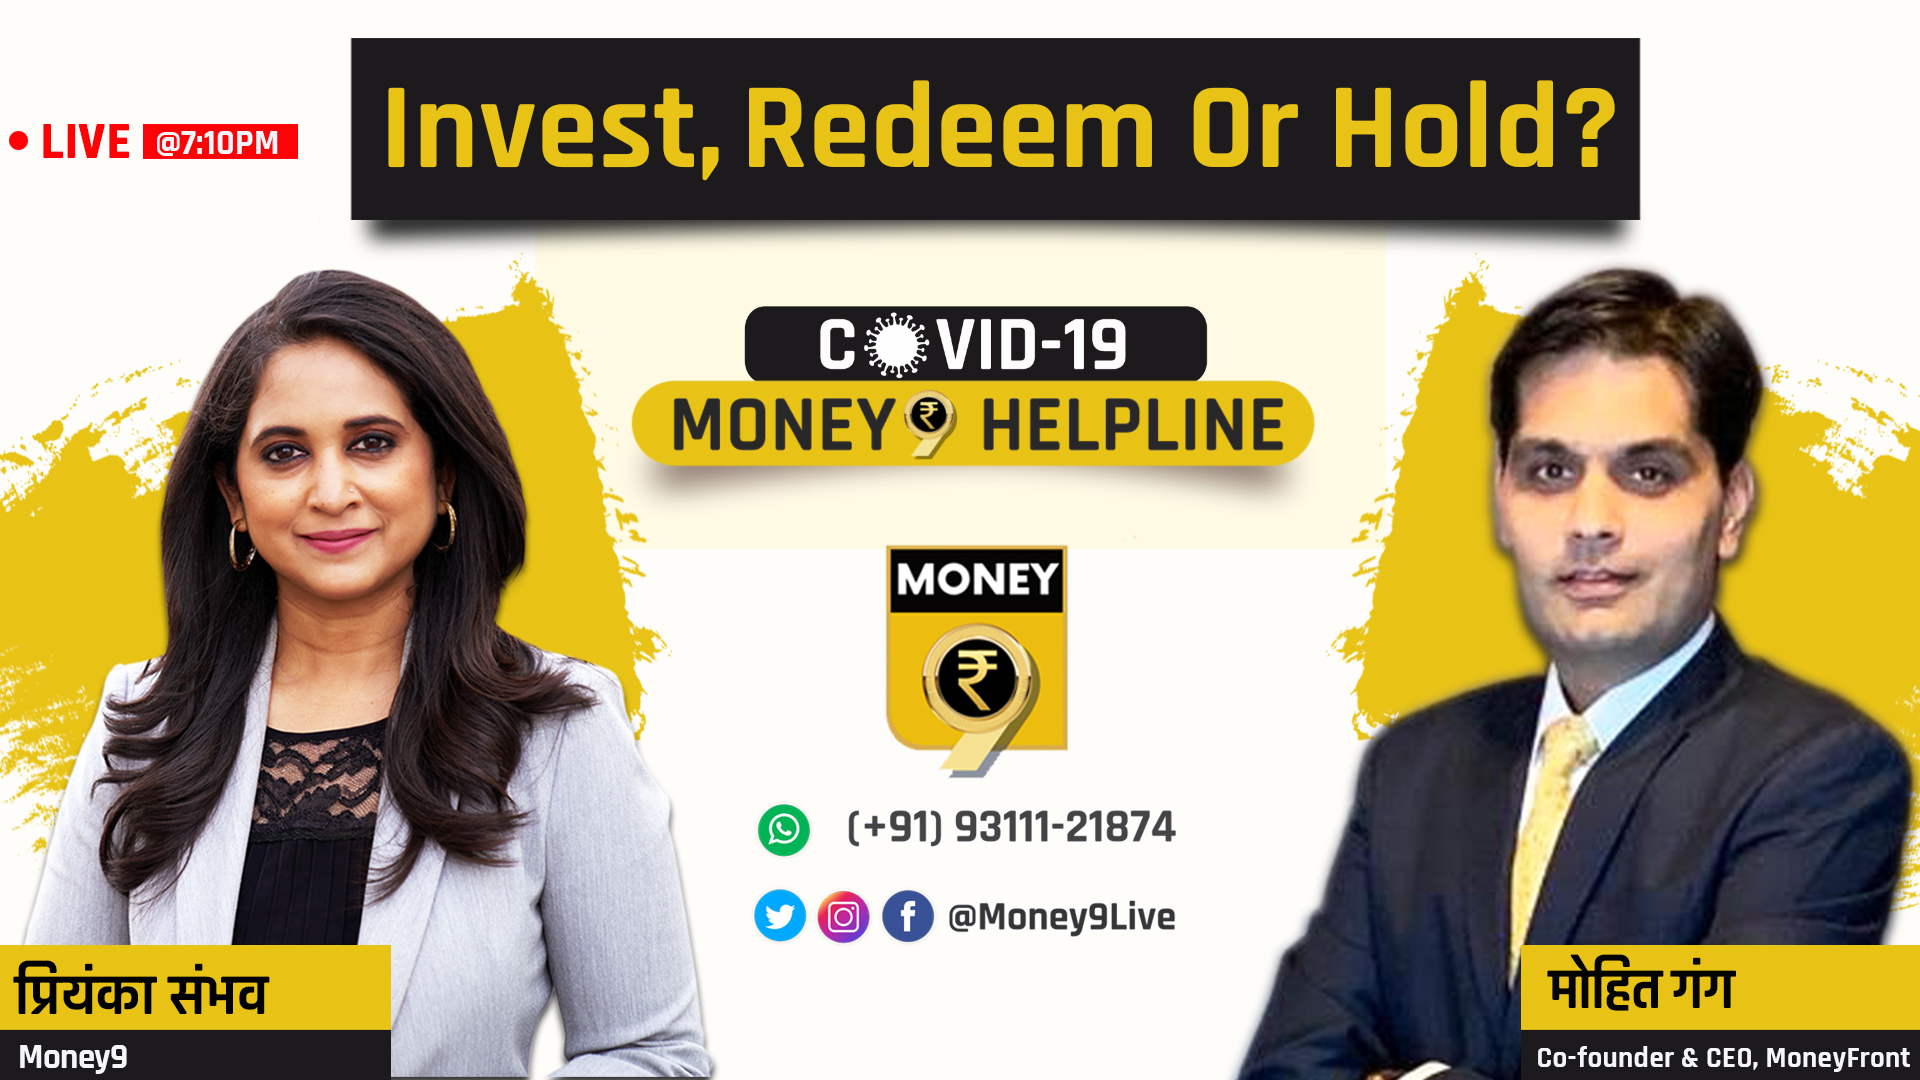 Invest, Redeem Or Hold? What should be your investment strategy right now? At 7:10 pm, Priyanka Sambhav will be in conversation with Mohit Gang, founder